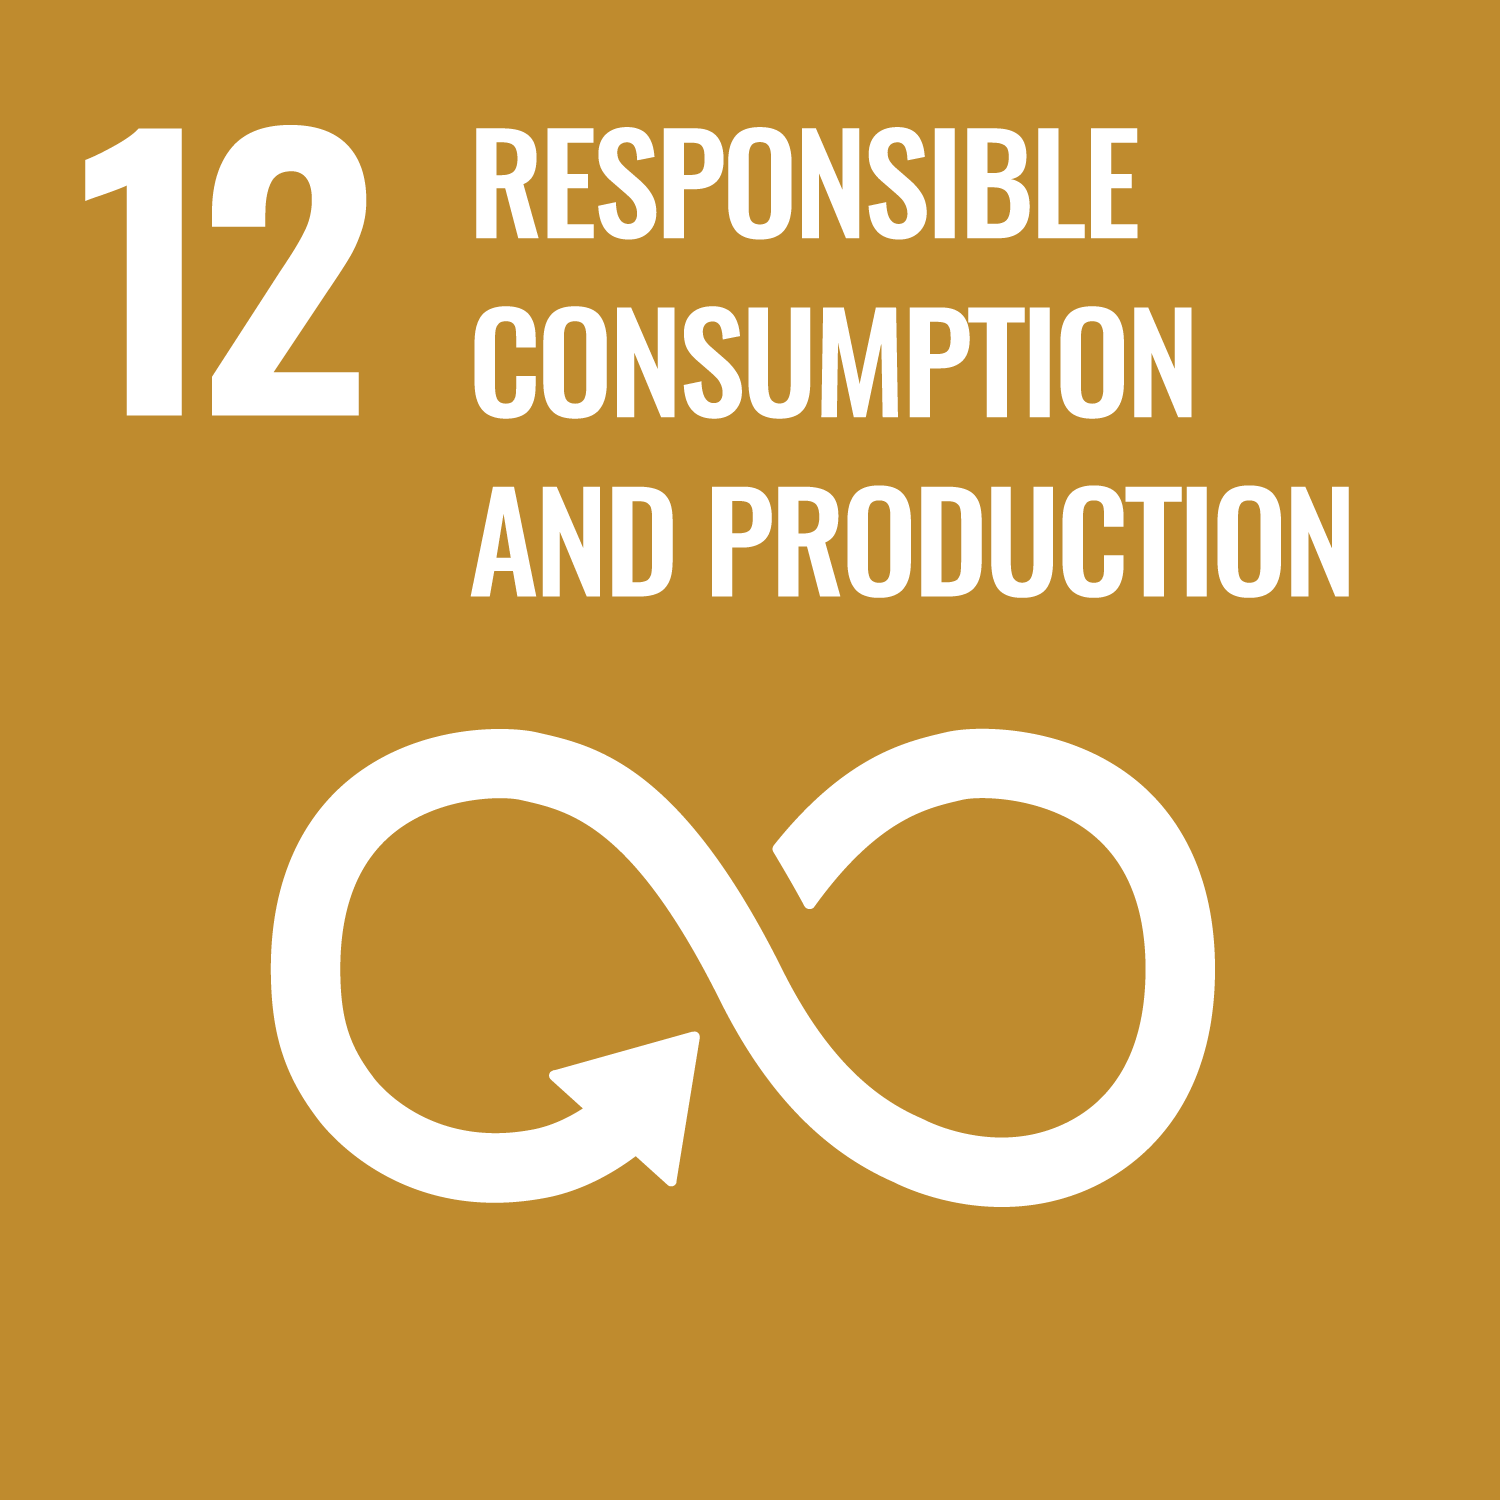 Sustainable Development Goal 12. Ensure sustainable consumption and production patterns.